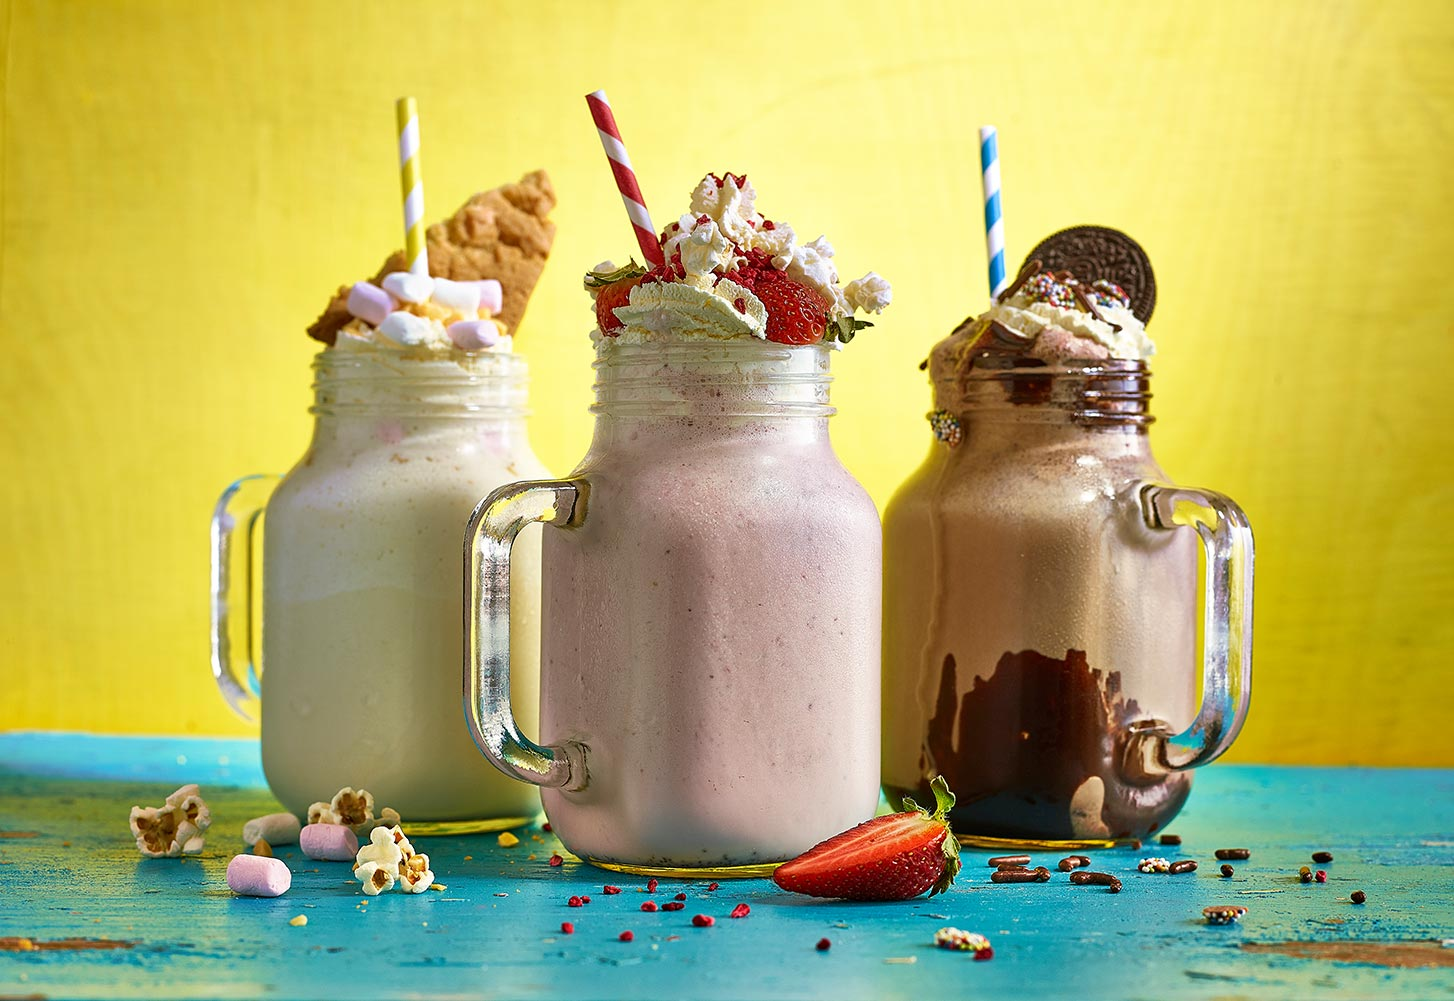 Shaken Not Stirred! Milkshakes in a Jar...